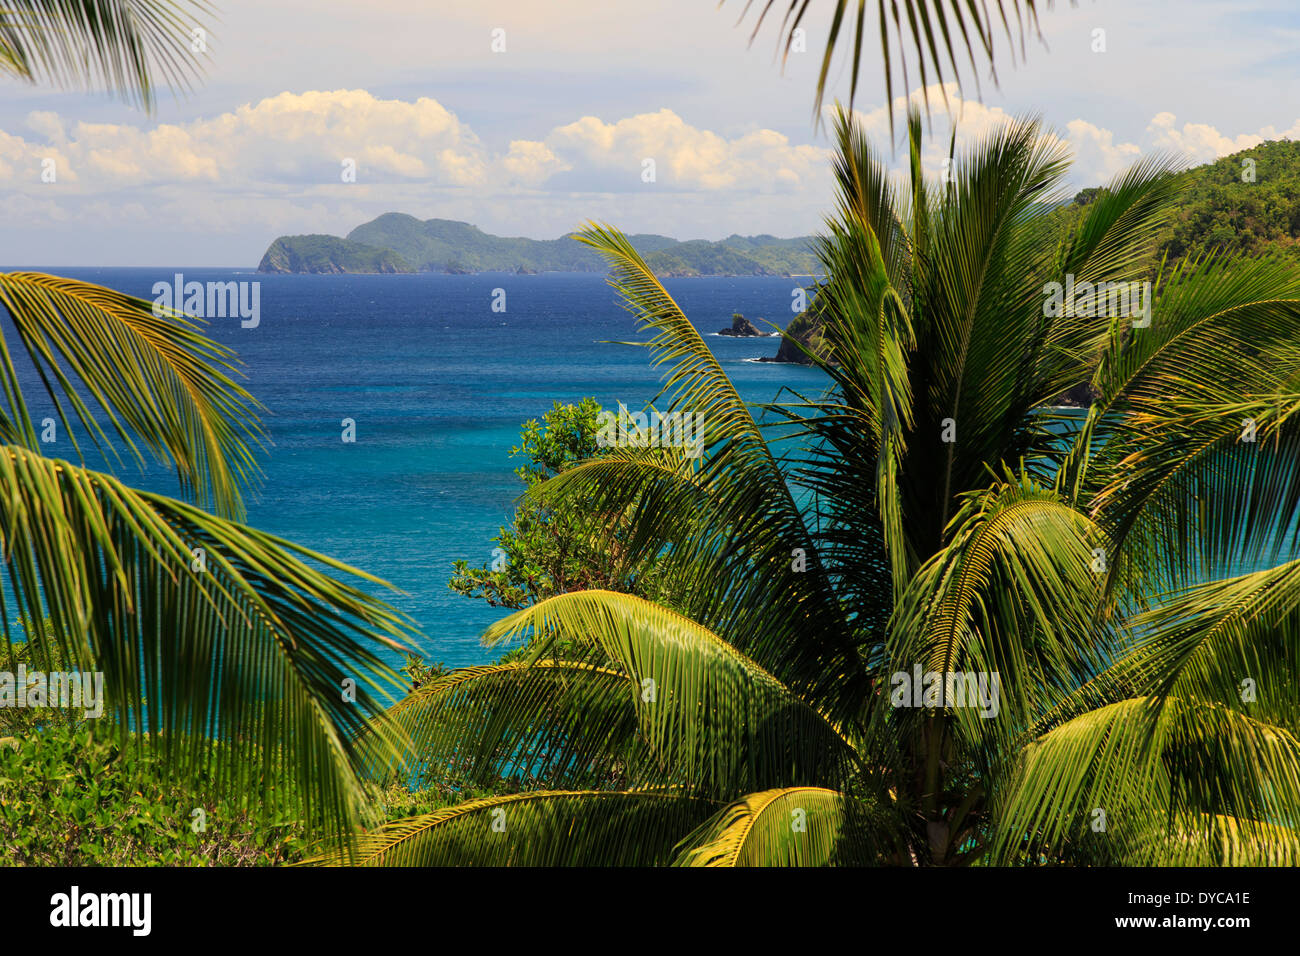 Philippines, Palawan, Port Barton, Baybay fishing village - Stock Image